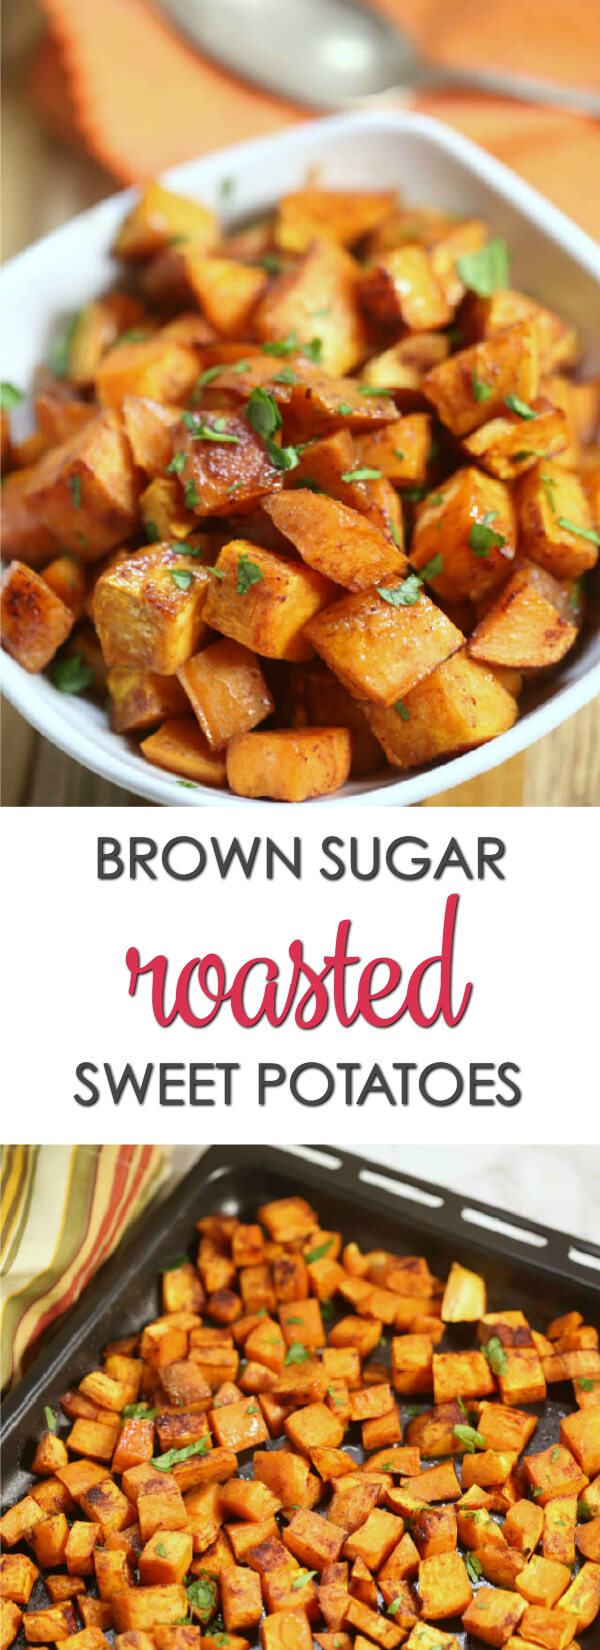 These Brown Sugar Sweet Potatoes are one of the best roasted sweet potato recipes you will try.  They're dusted with cinnamon and other spices then coated in a sweet brown sugar mixture and roasted to golden perfection.